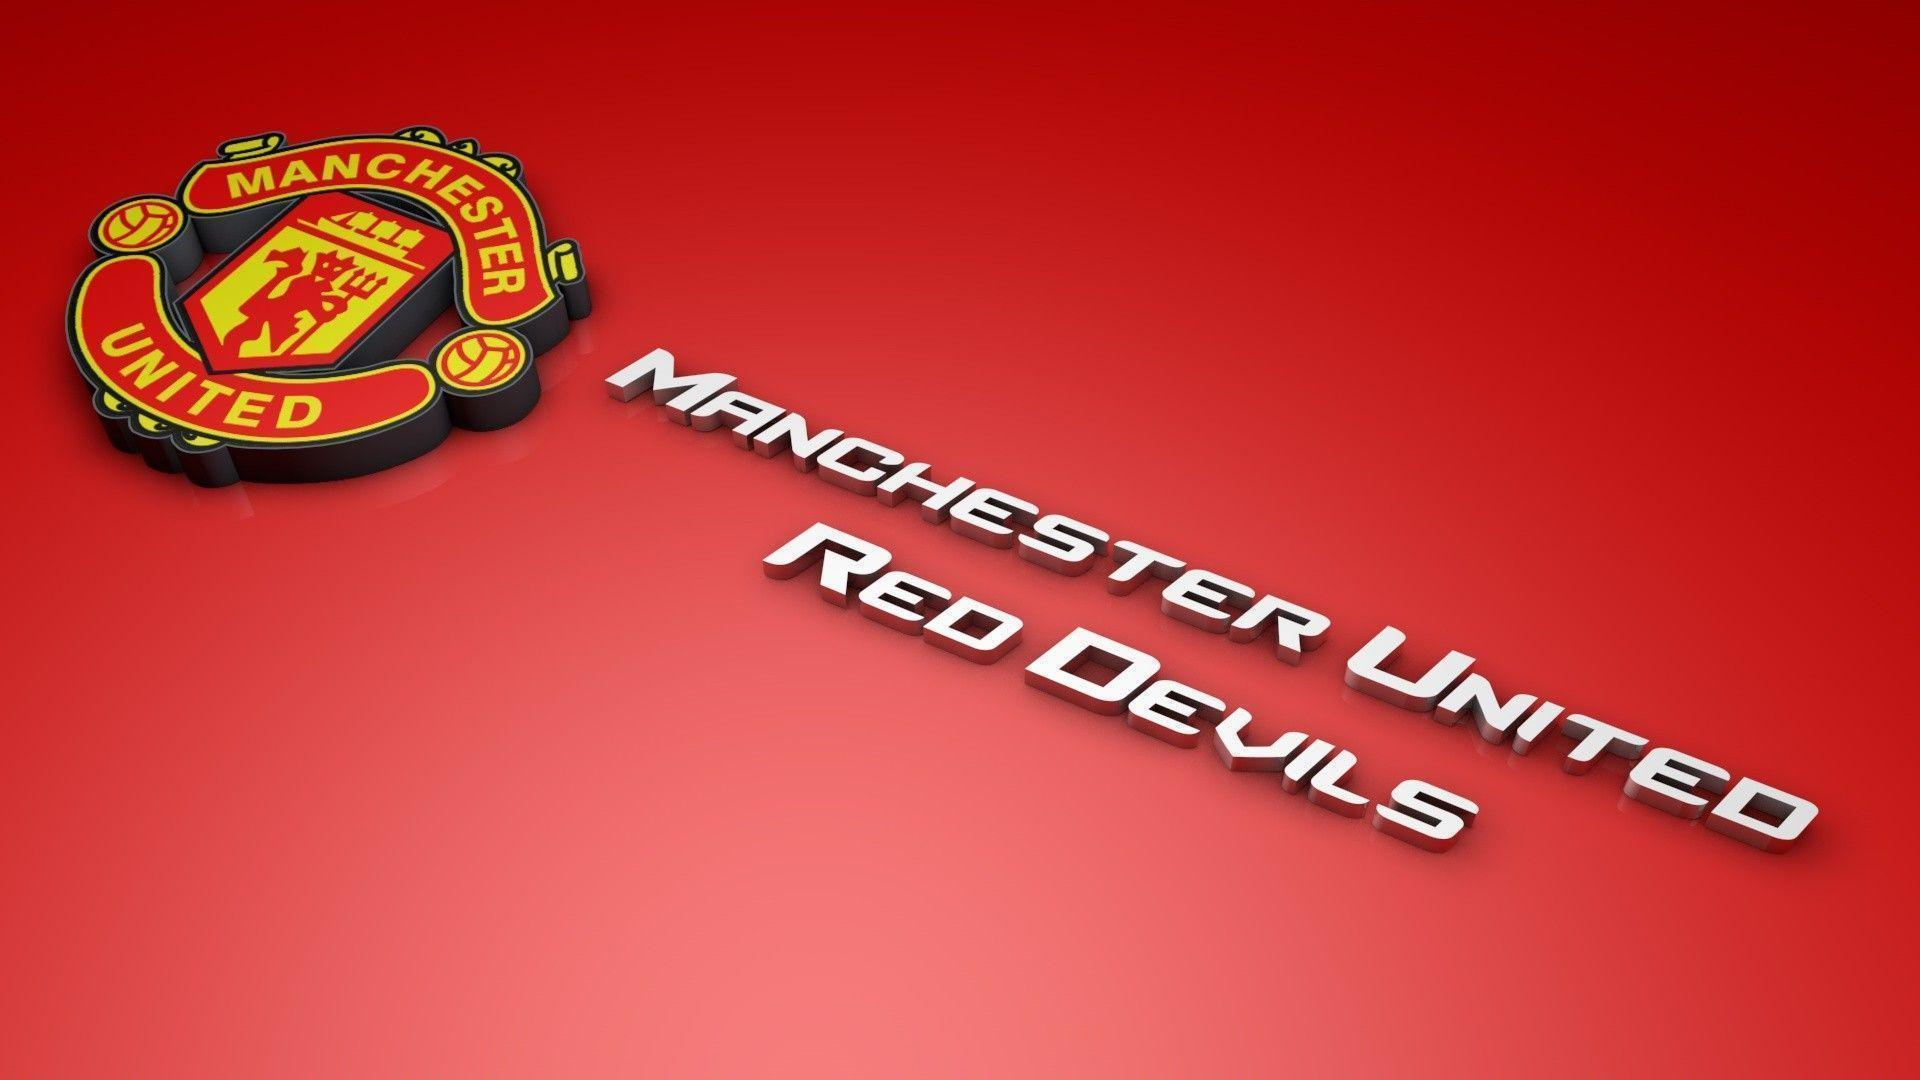 Manchester united wallpapers 3d 2017 wallpaper cave manchester united wallpaper widescreen man unted pinterest voltagebd Image collections